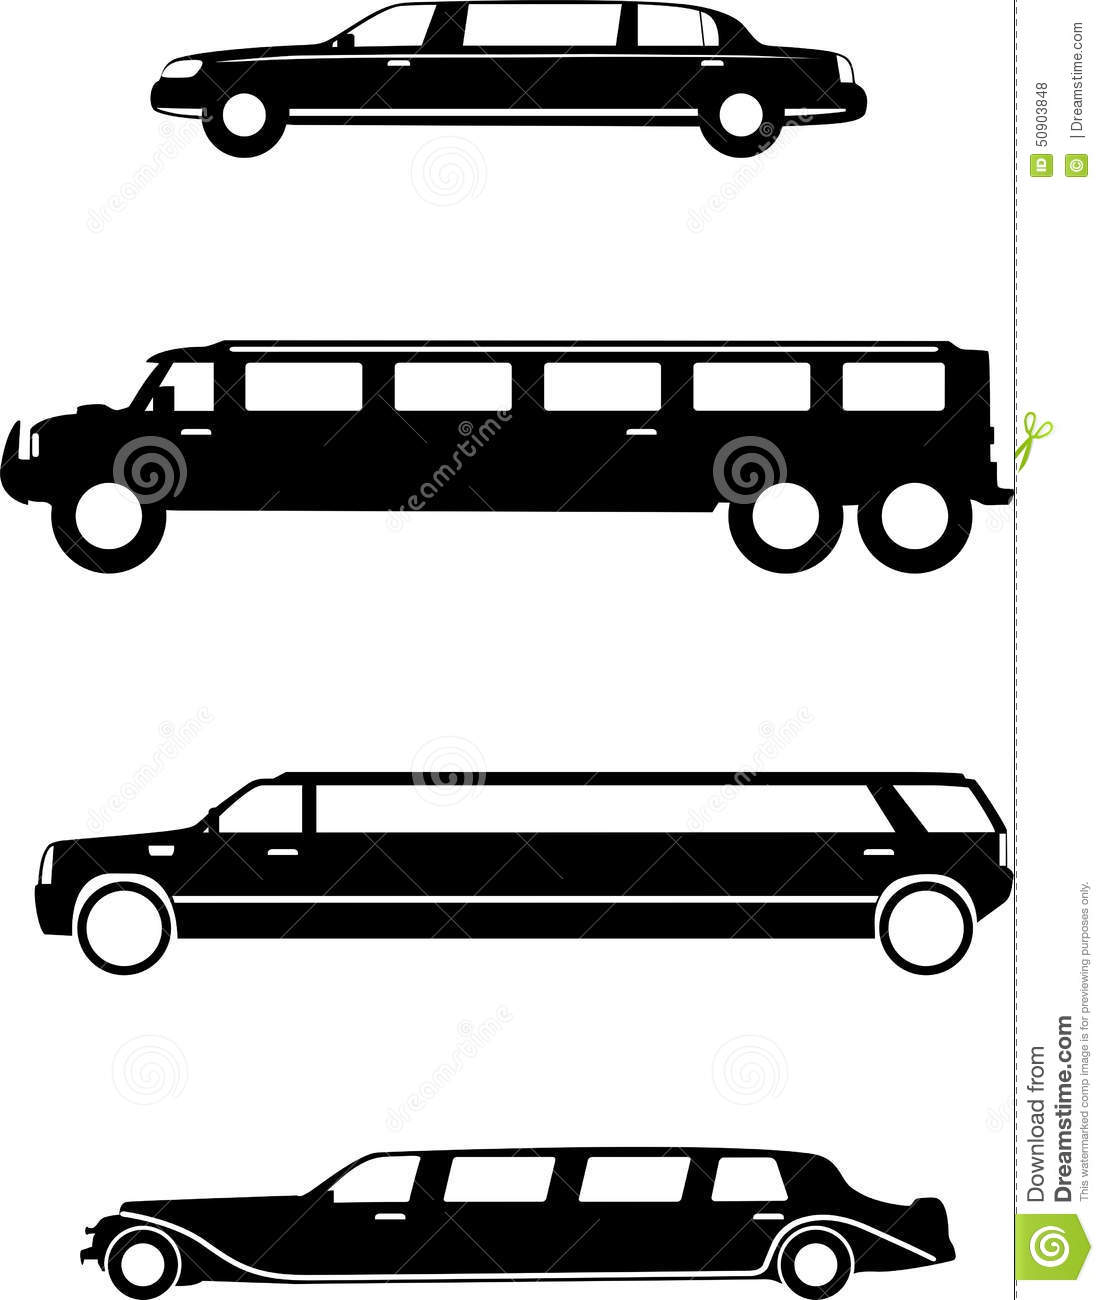 Limousine Stock Vector Illustration Of Lincoln Mariage 50903848